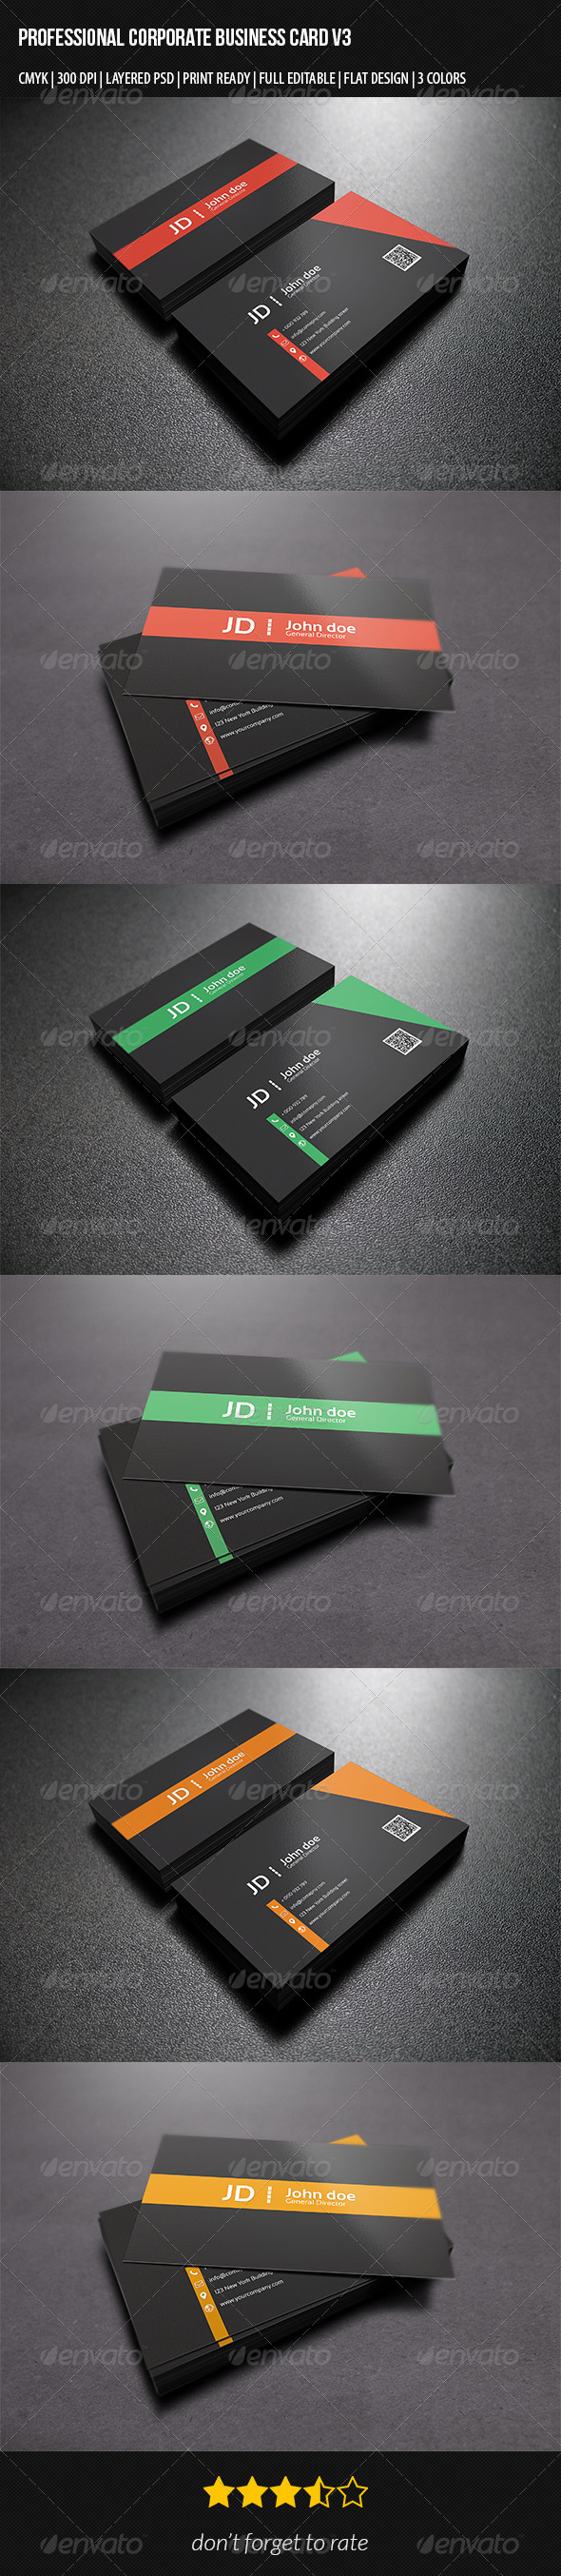 GraphicRiver Professional Corporate Business Card V3 7354134